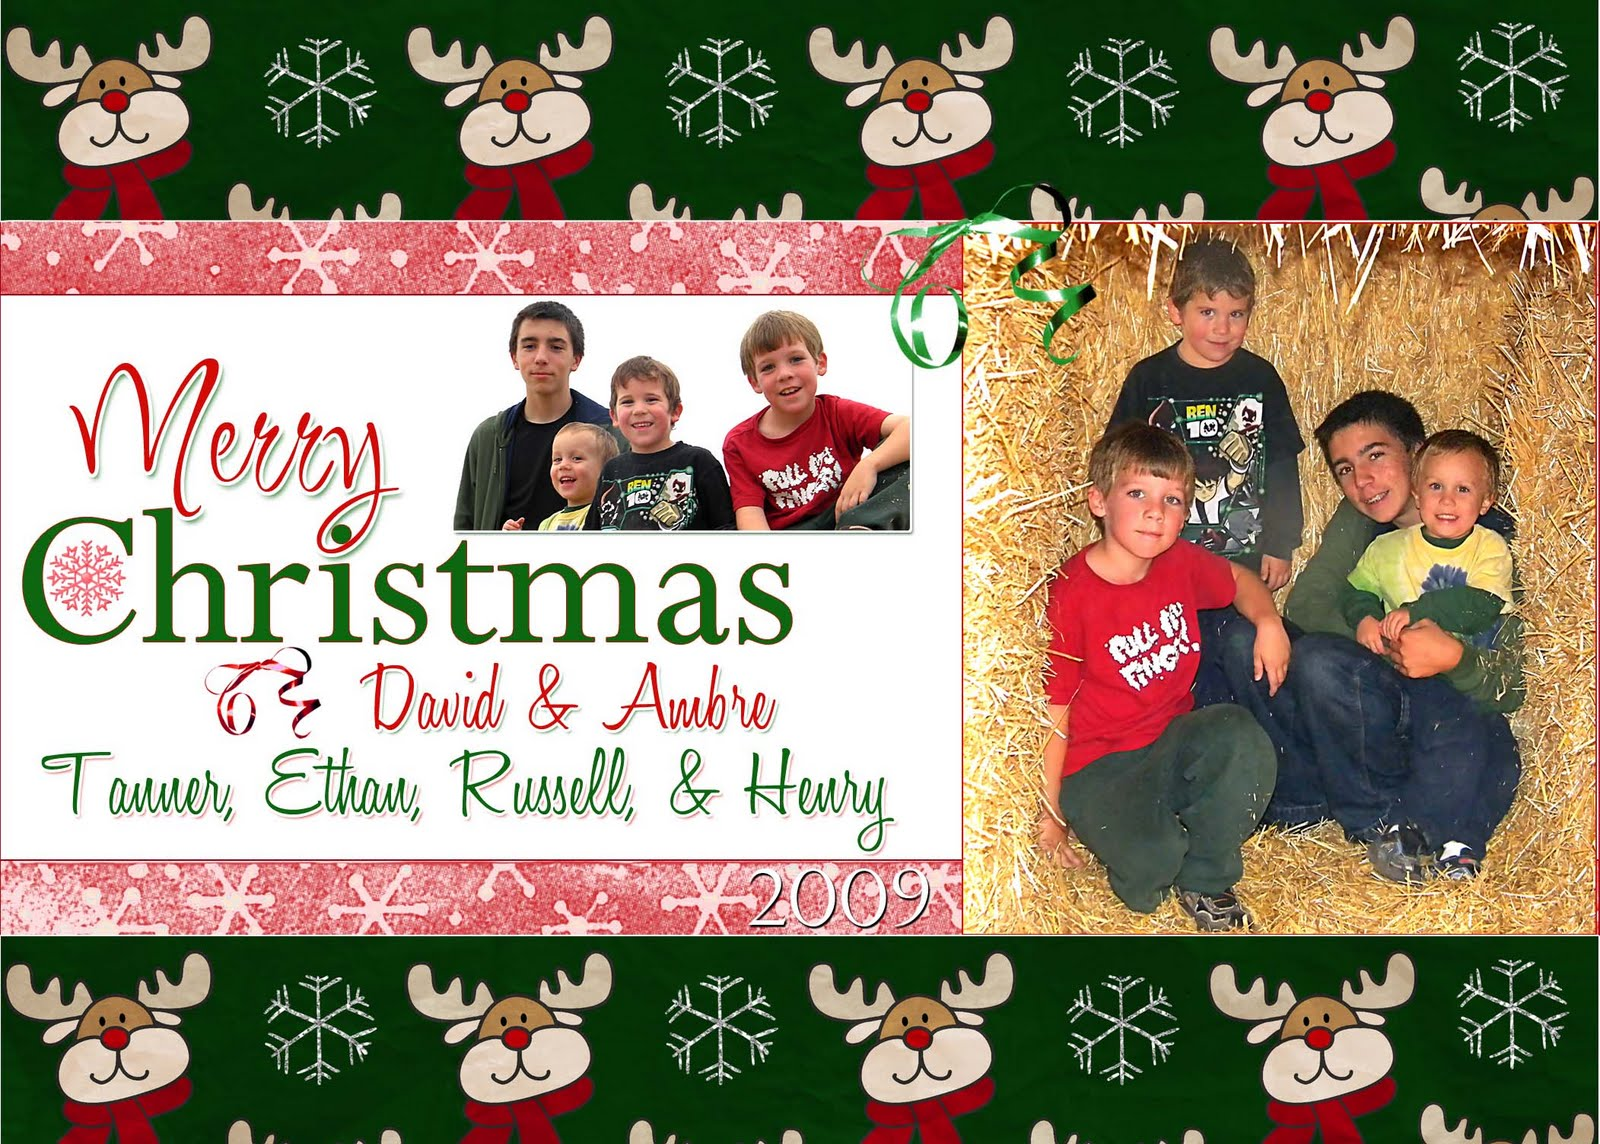 Sds designs christmas card samples christmas card samples order your chistmas cards today o here are a few recent cards ive made m4hsunfo